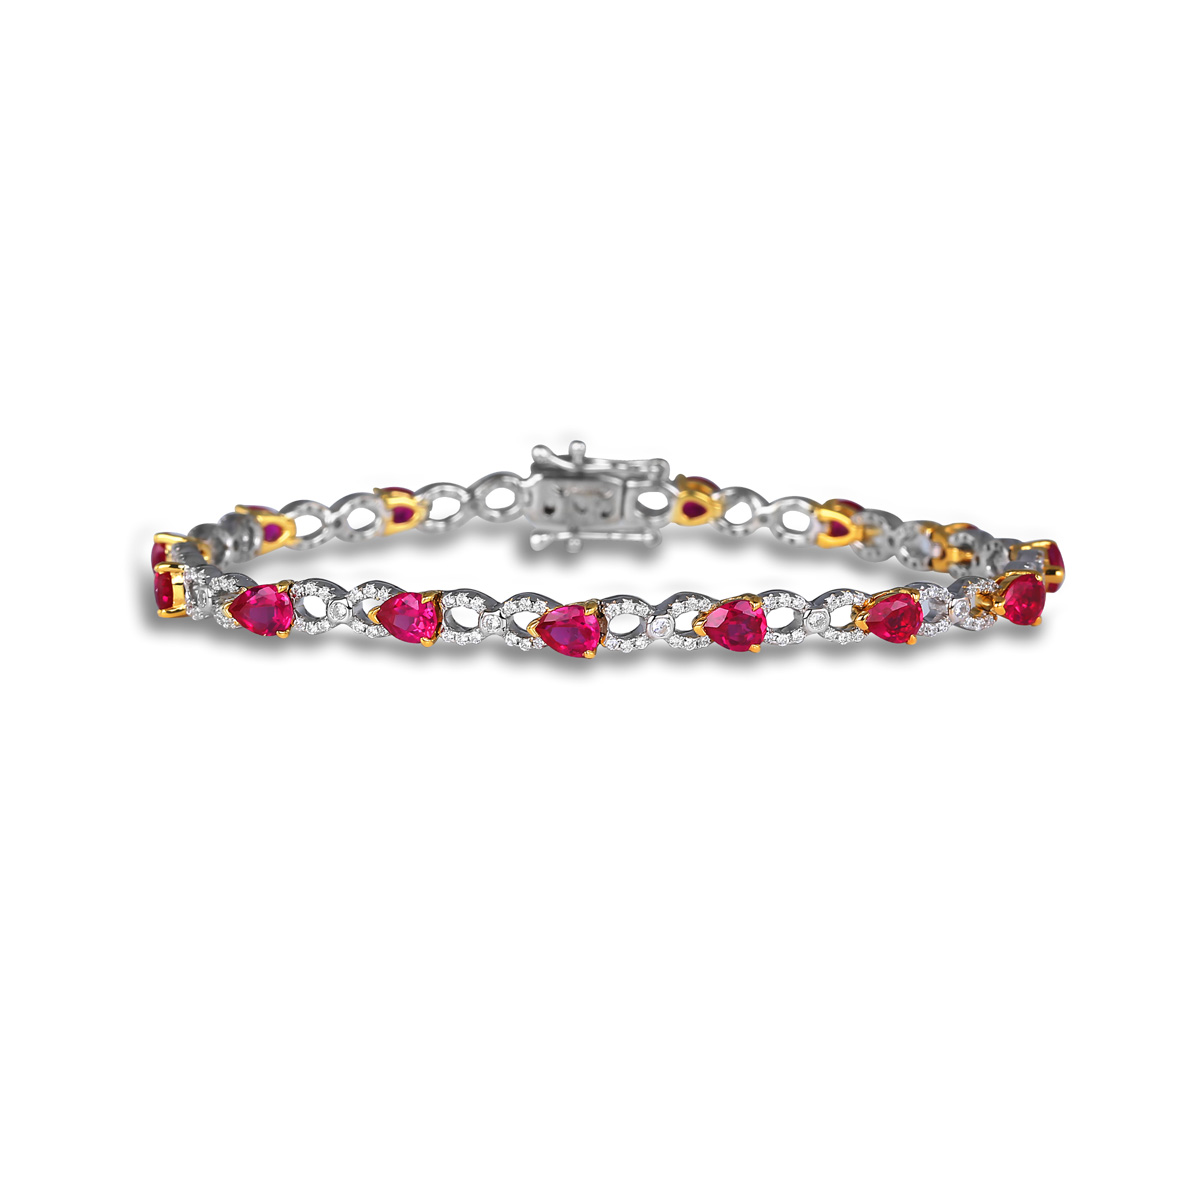 Ruby and Diamond Pear shape Bracelets - This ruby and diamond pear shape bracelets comes in a variety of material types like 14k white gold, yellow gold, rose gold and can be customized with your jeweler. Fana gemstone bracelets are perfect for that special woman in your life.